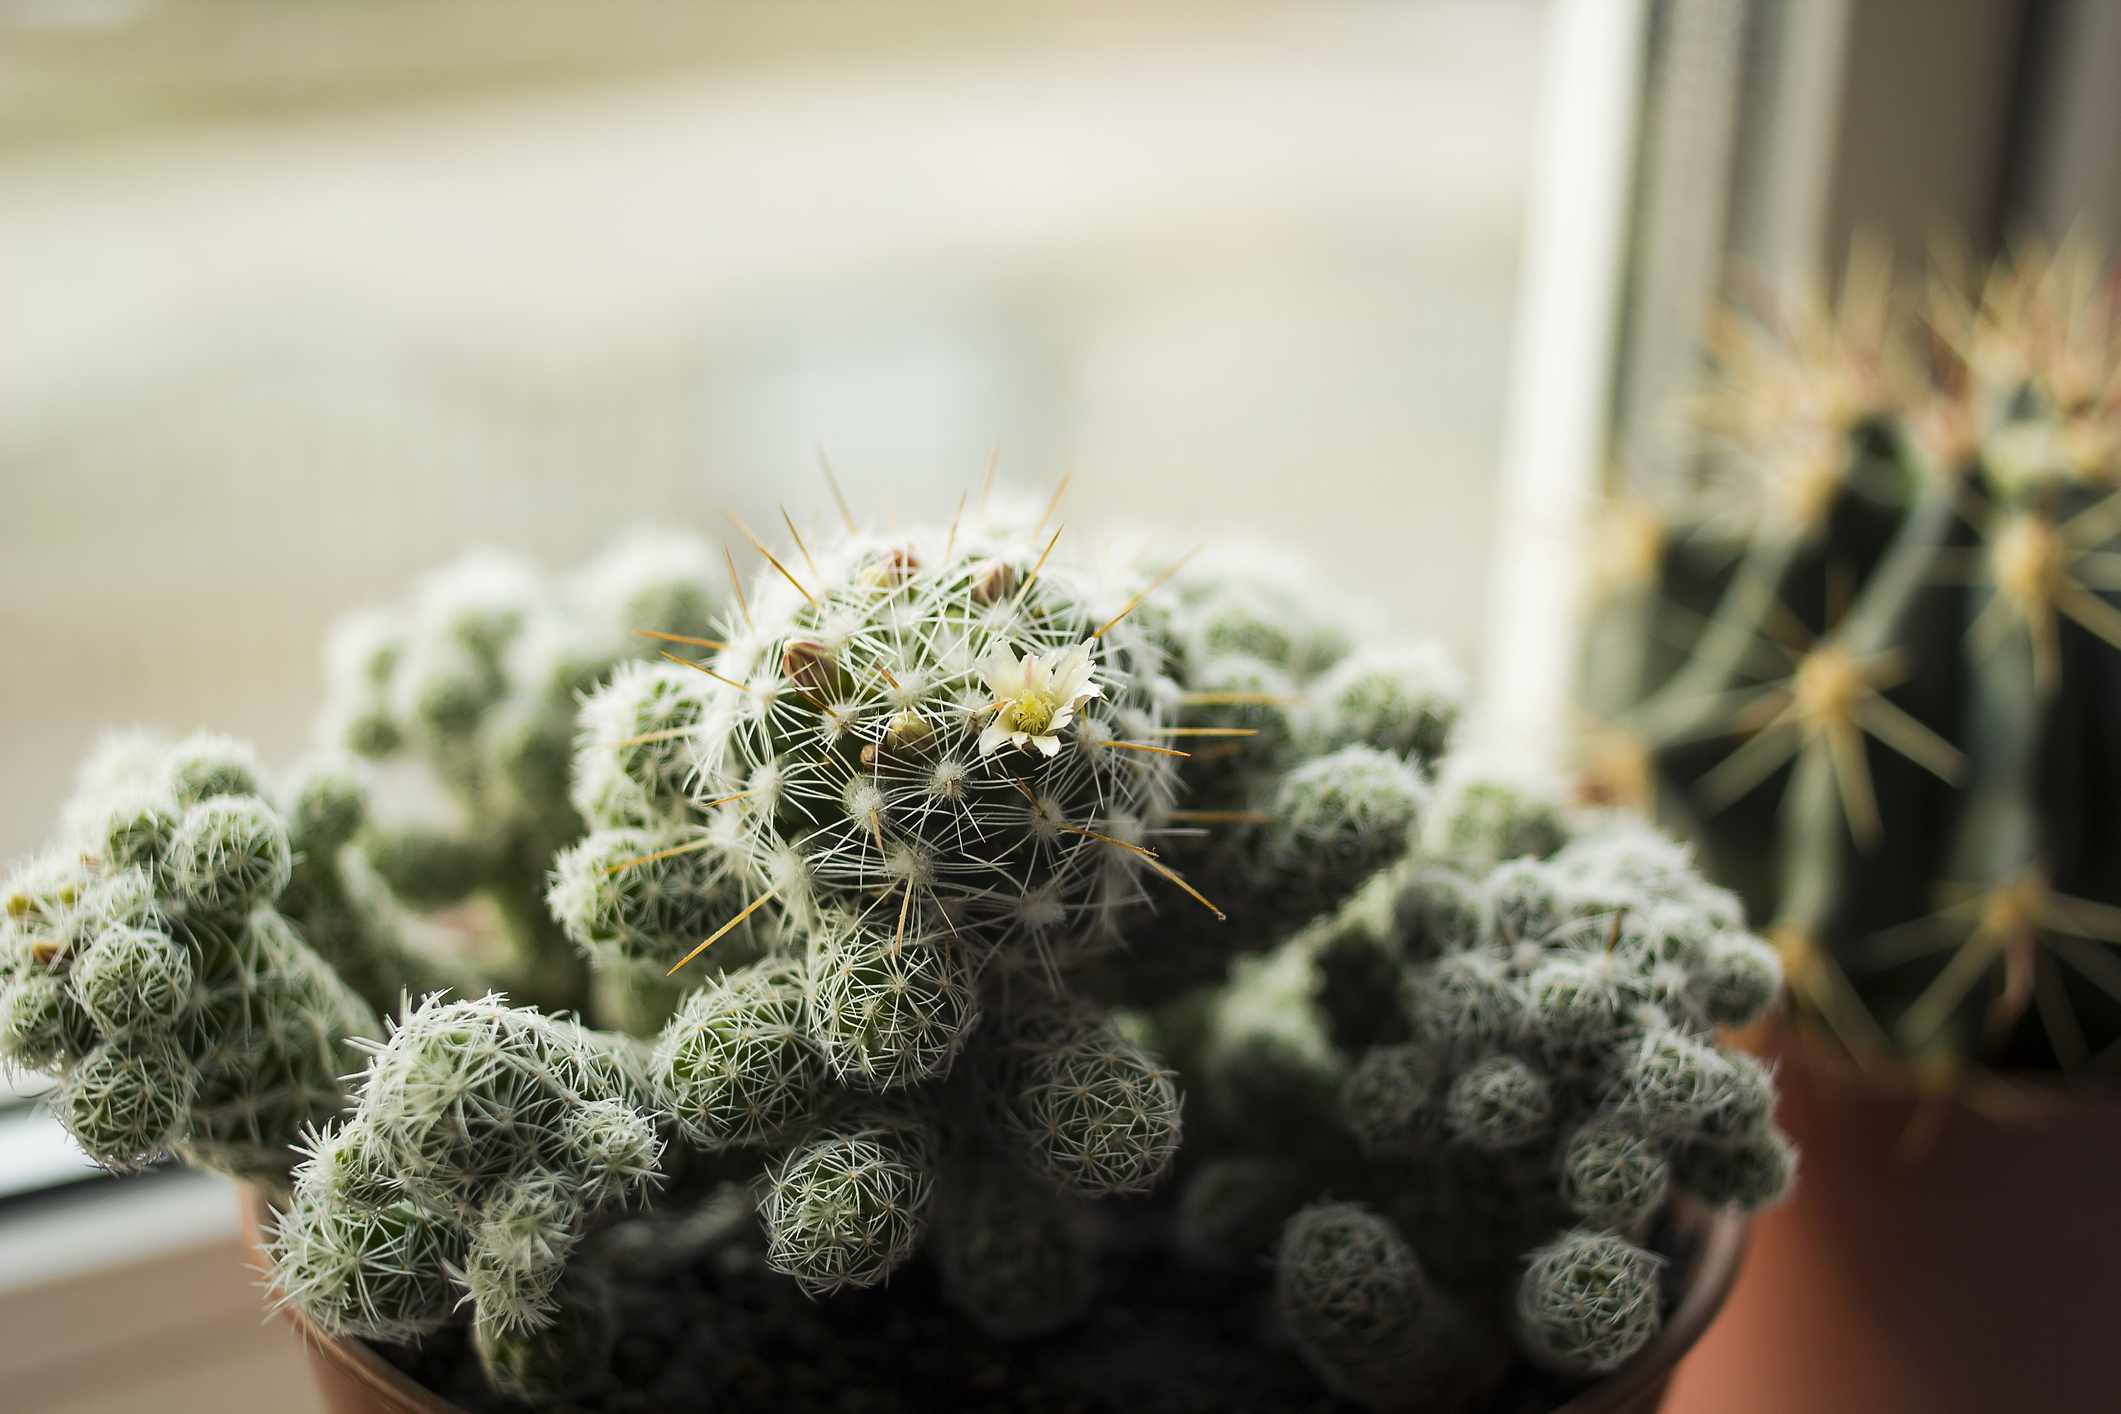 ladyfinger cactus with green flesh and white spines and one yellow flower in window